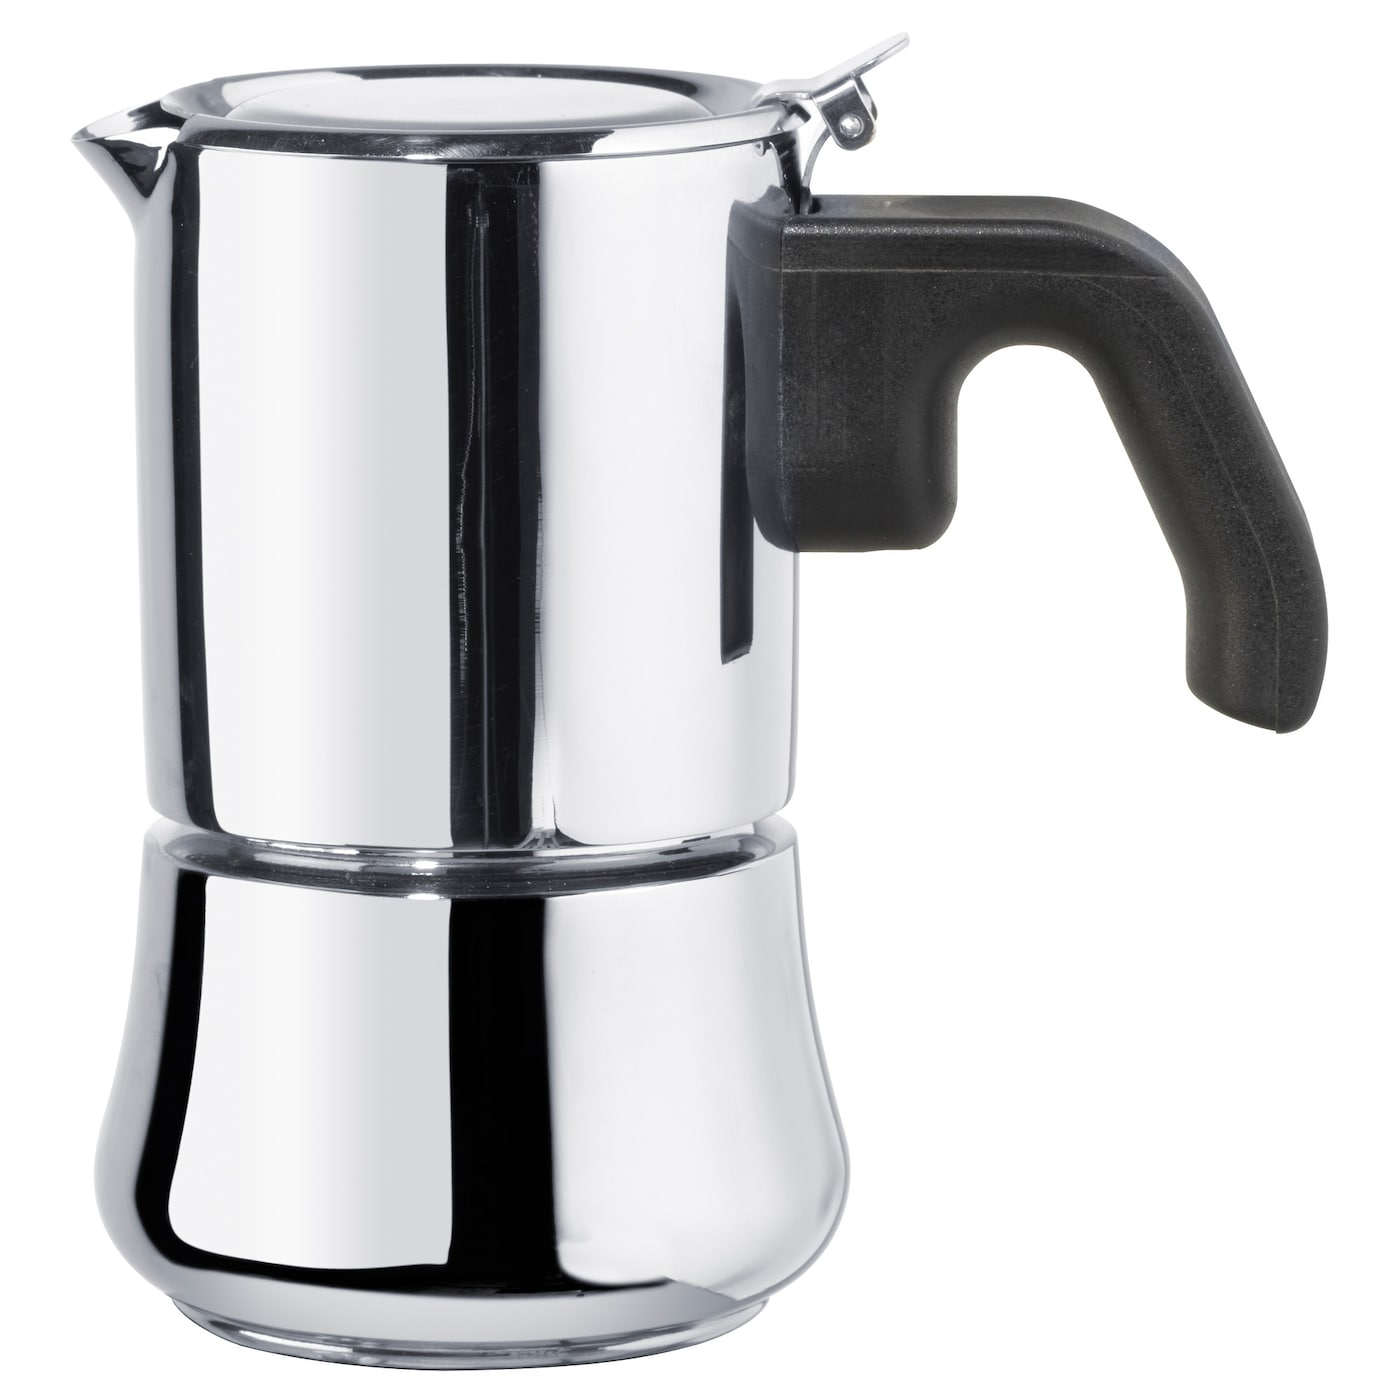 IKEA RÅDIG espresso maker for 3 cups